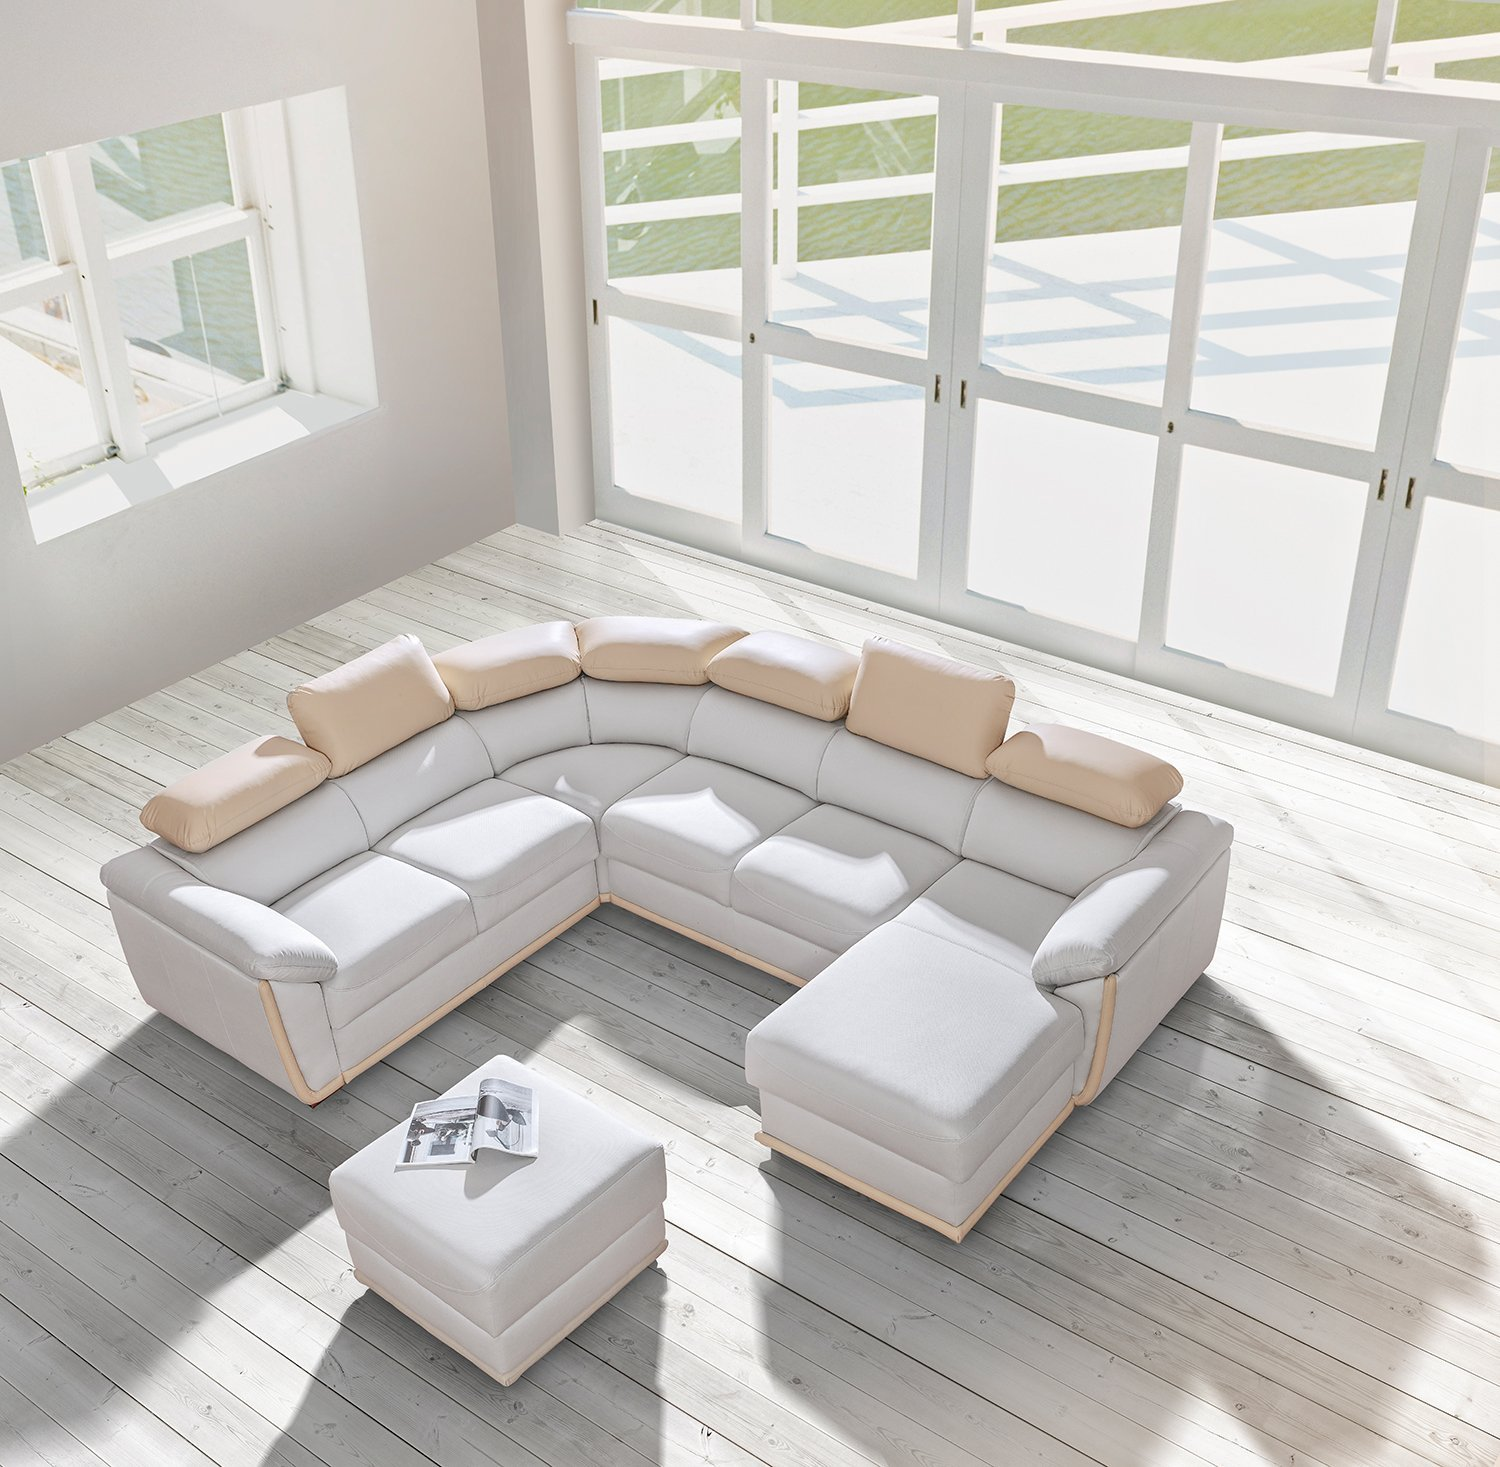 Get Quotations Cadiz Dolm08 Right Corner Sectional Sofa Bed White Beige